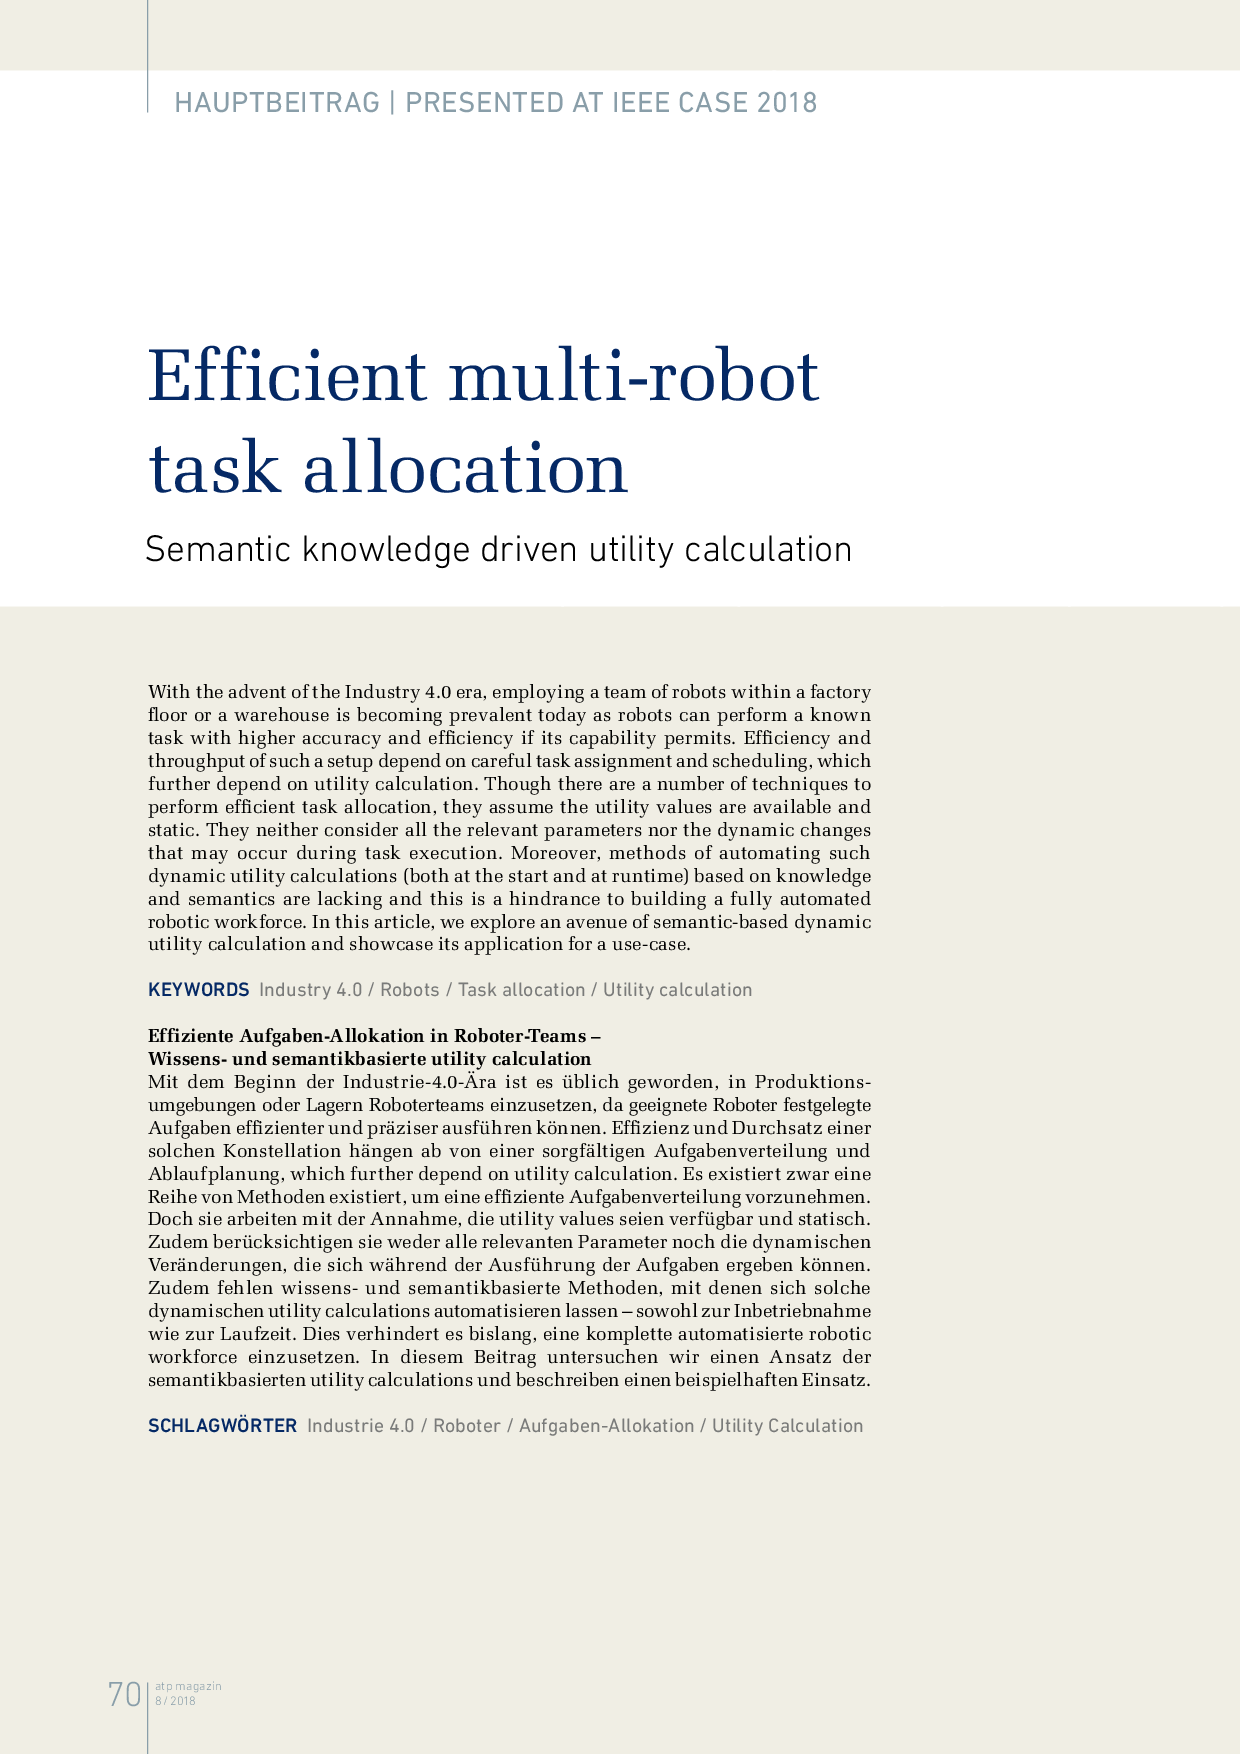 Efficient multi-robot task allocation